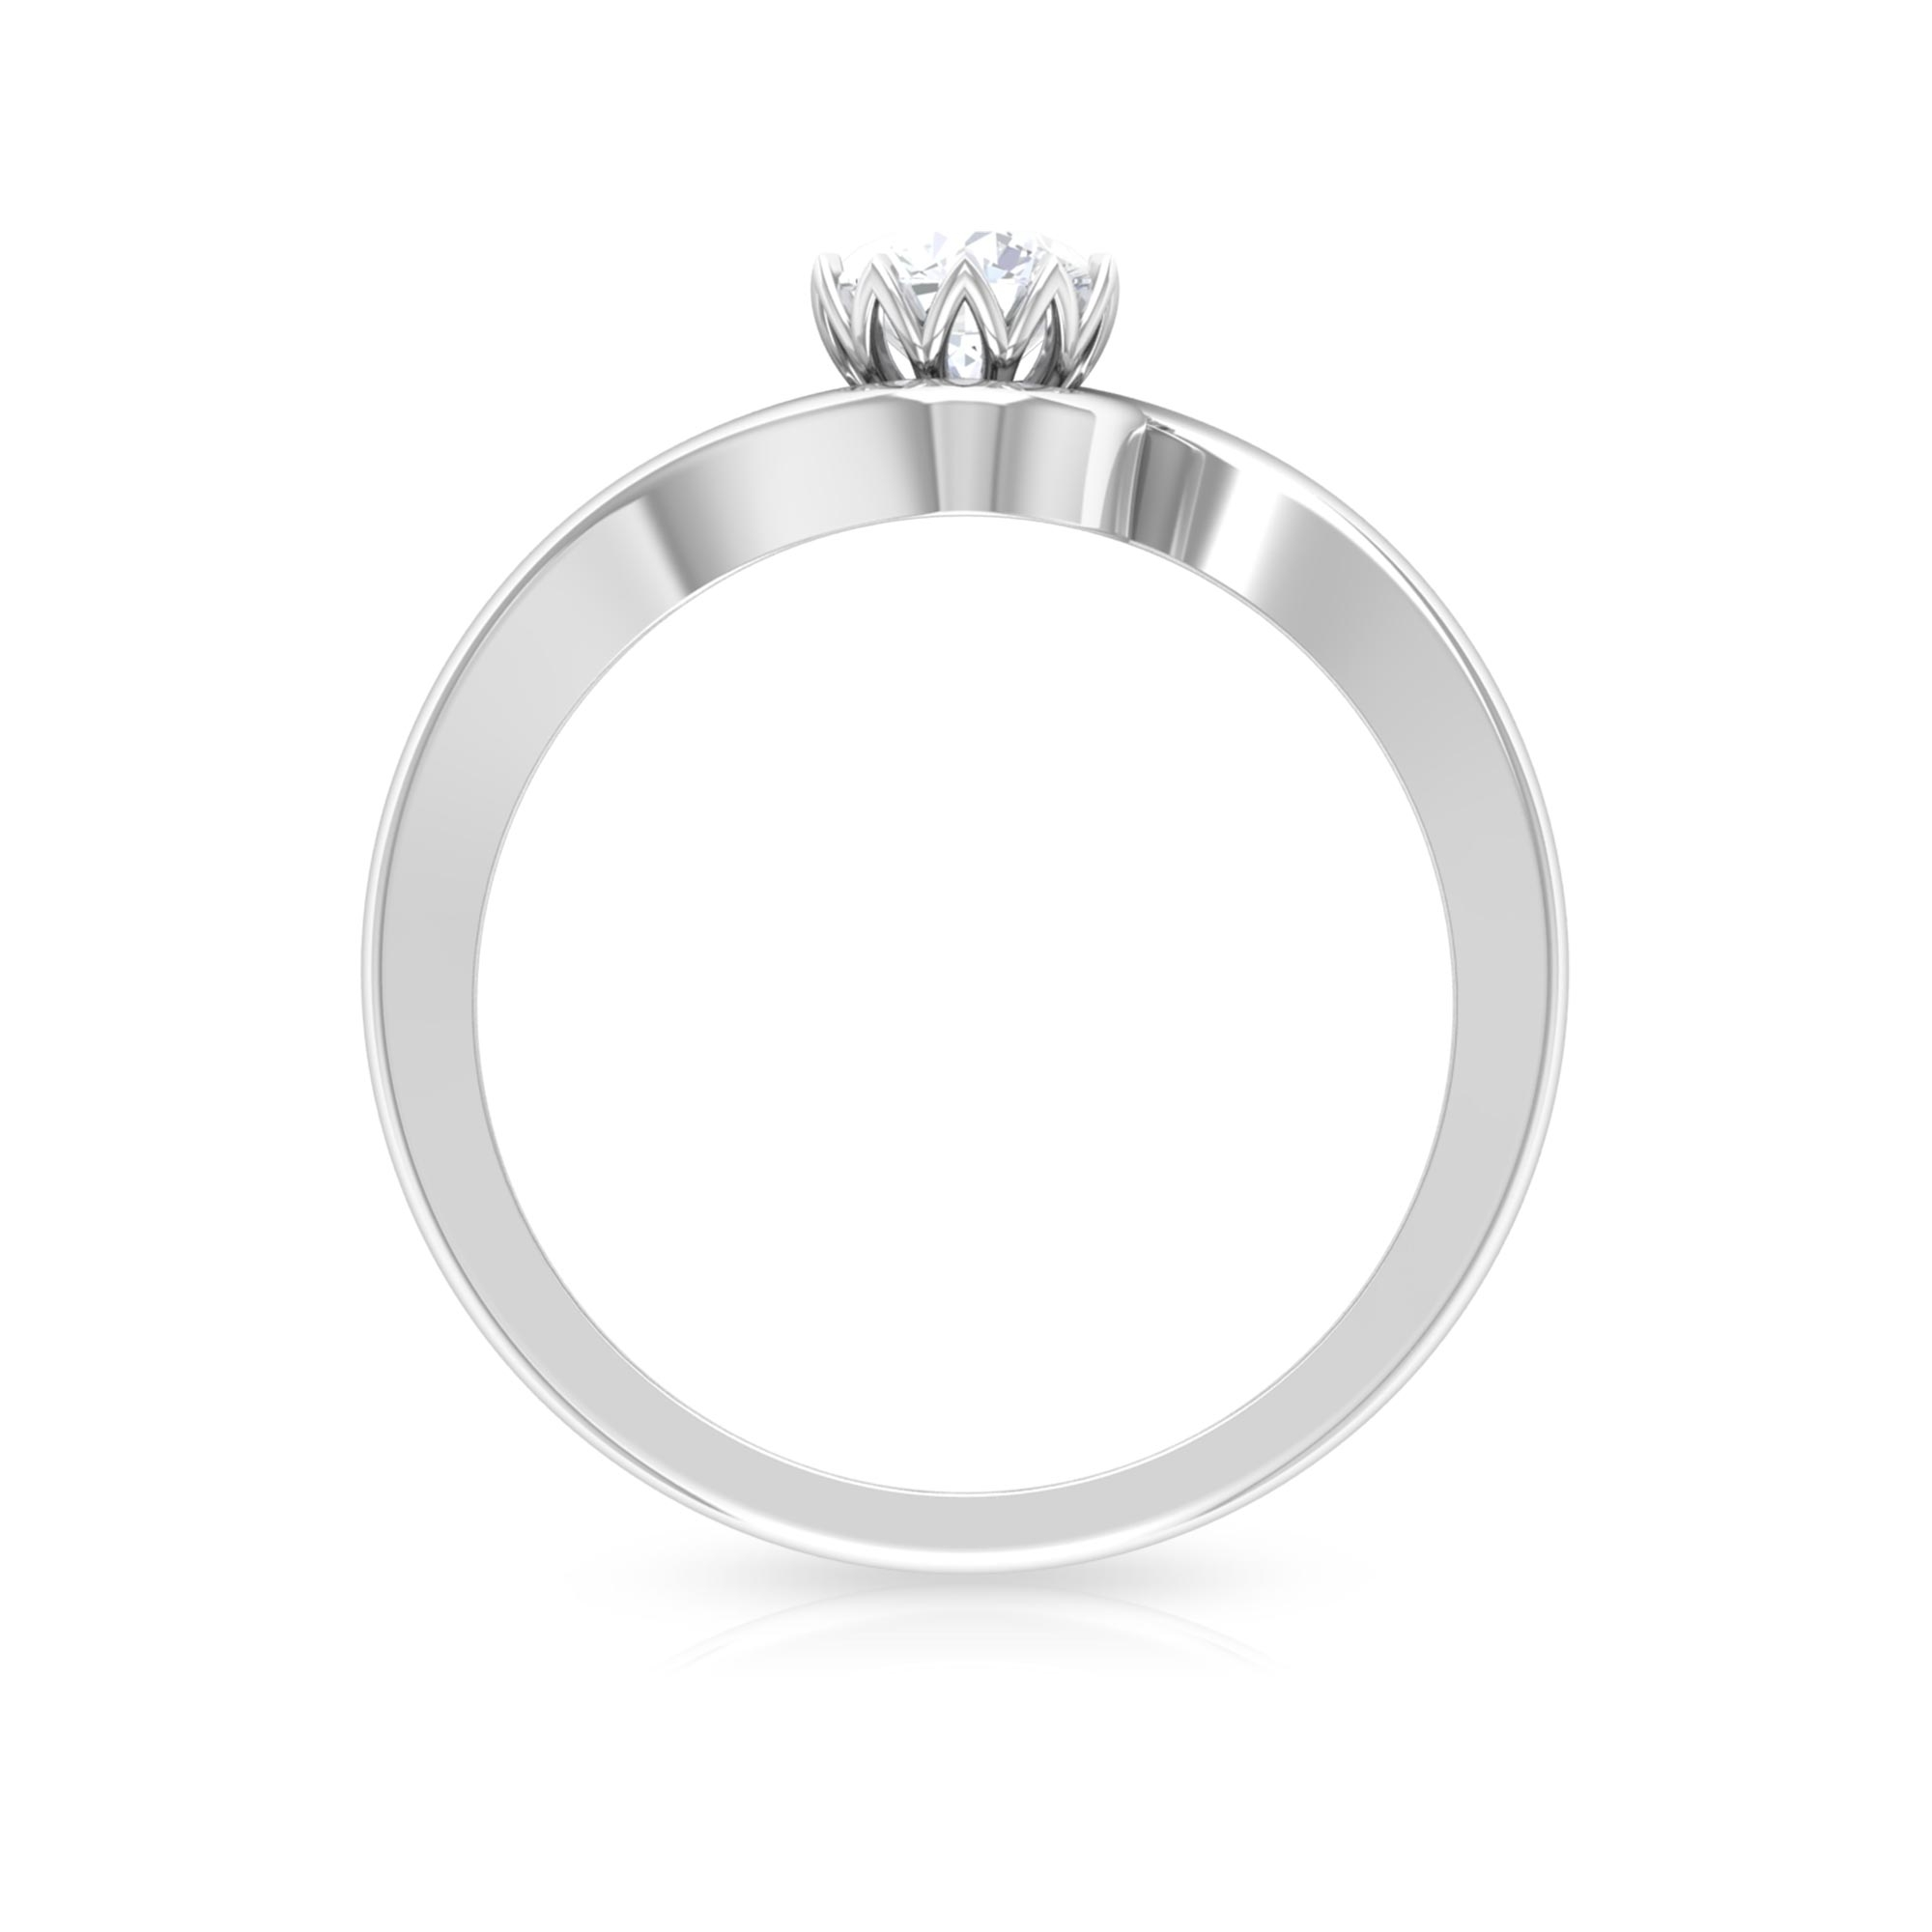 1/2 CT Diamond Solitaire Bypass Ring in Lotus Basket Setting